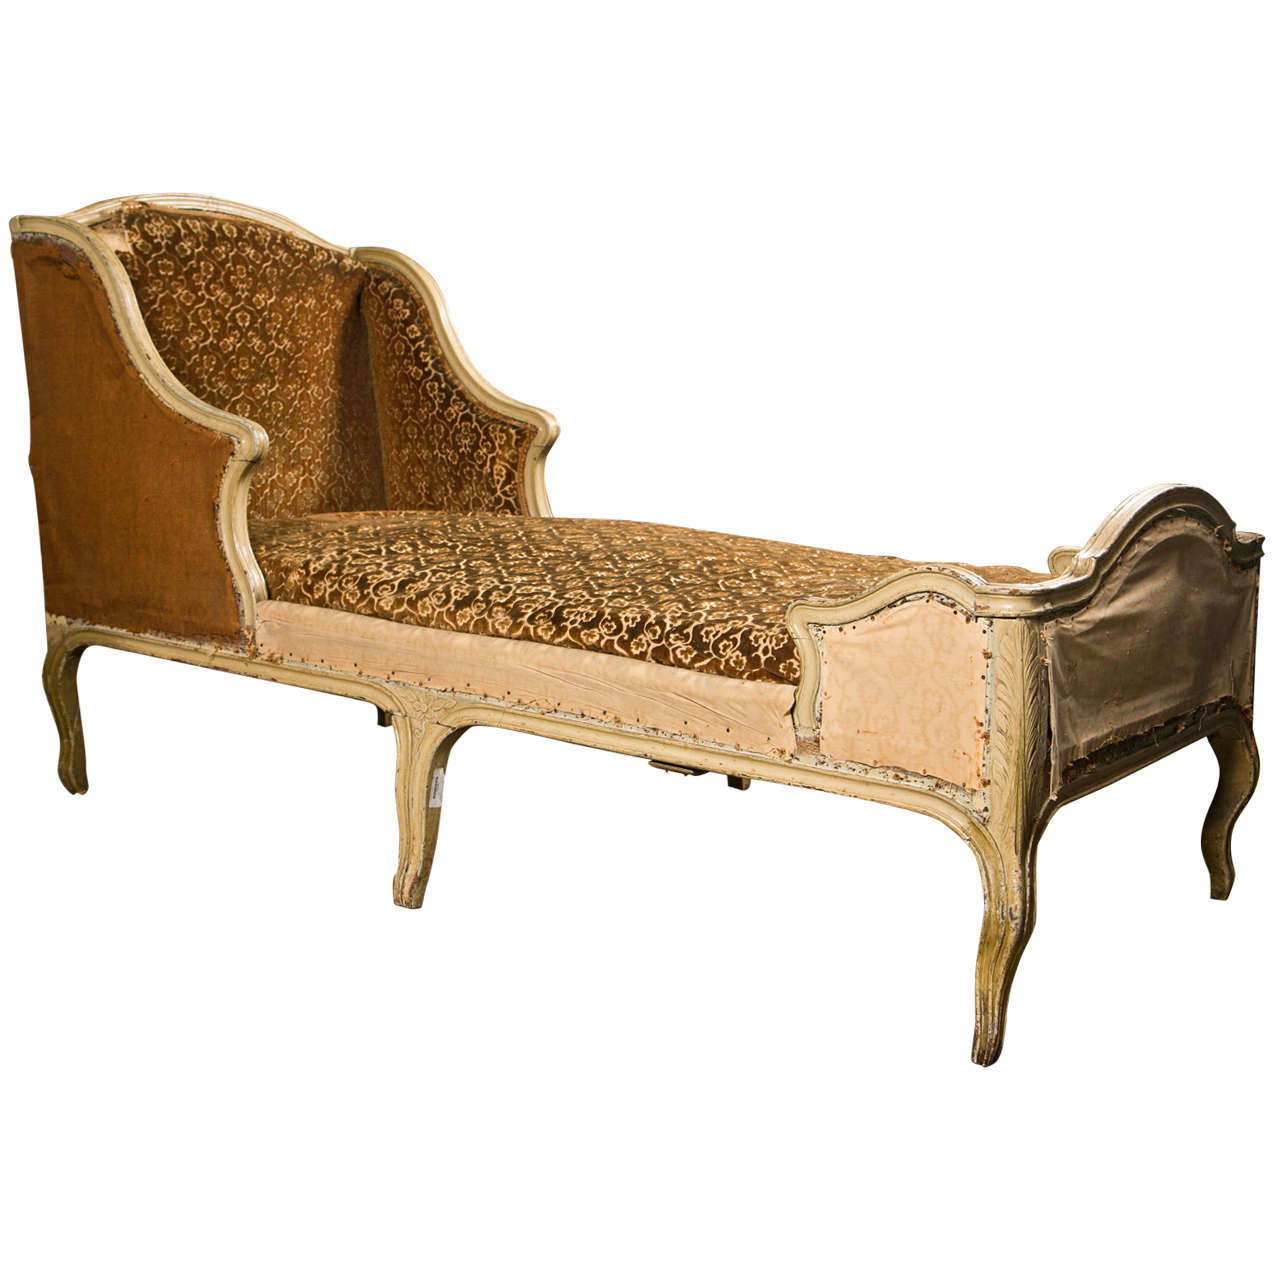 French painted oak chaise longue in the rococo style louis xv period c 177 - Chaise style baroque ...